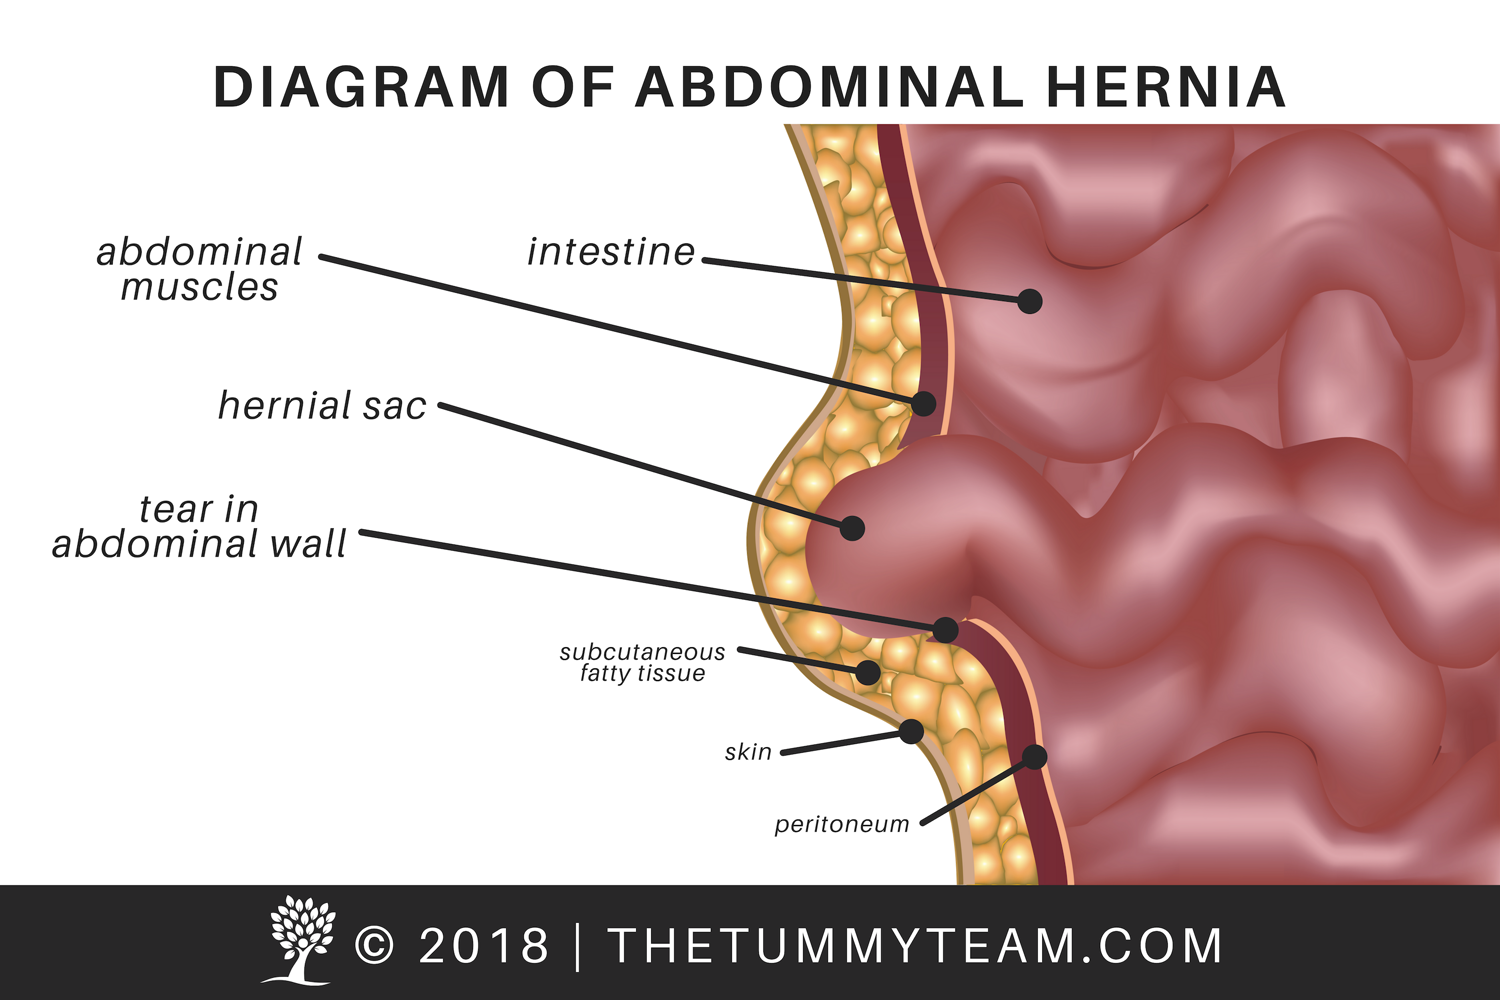 hernia diagram, copyright, the tummy team